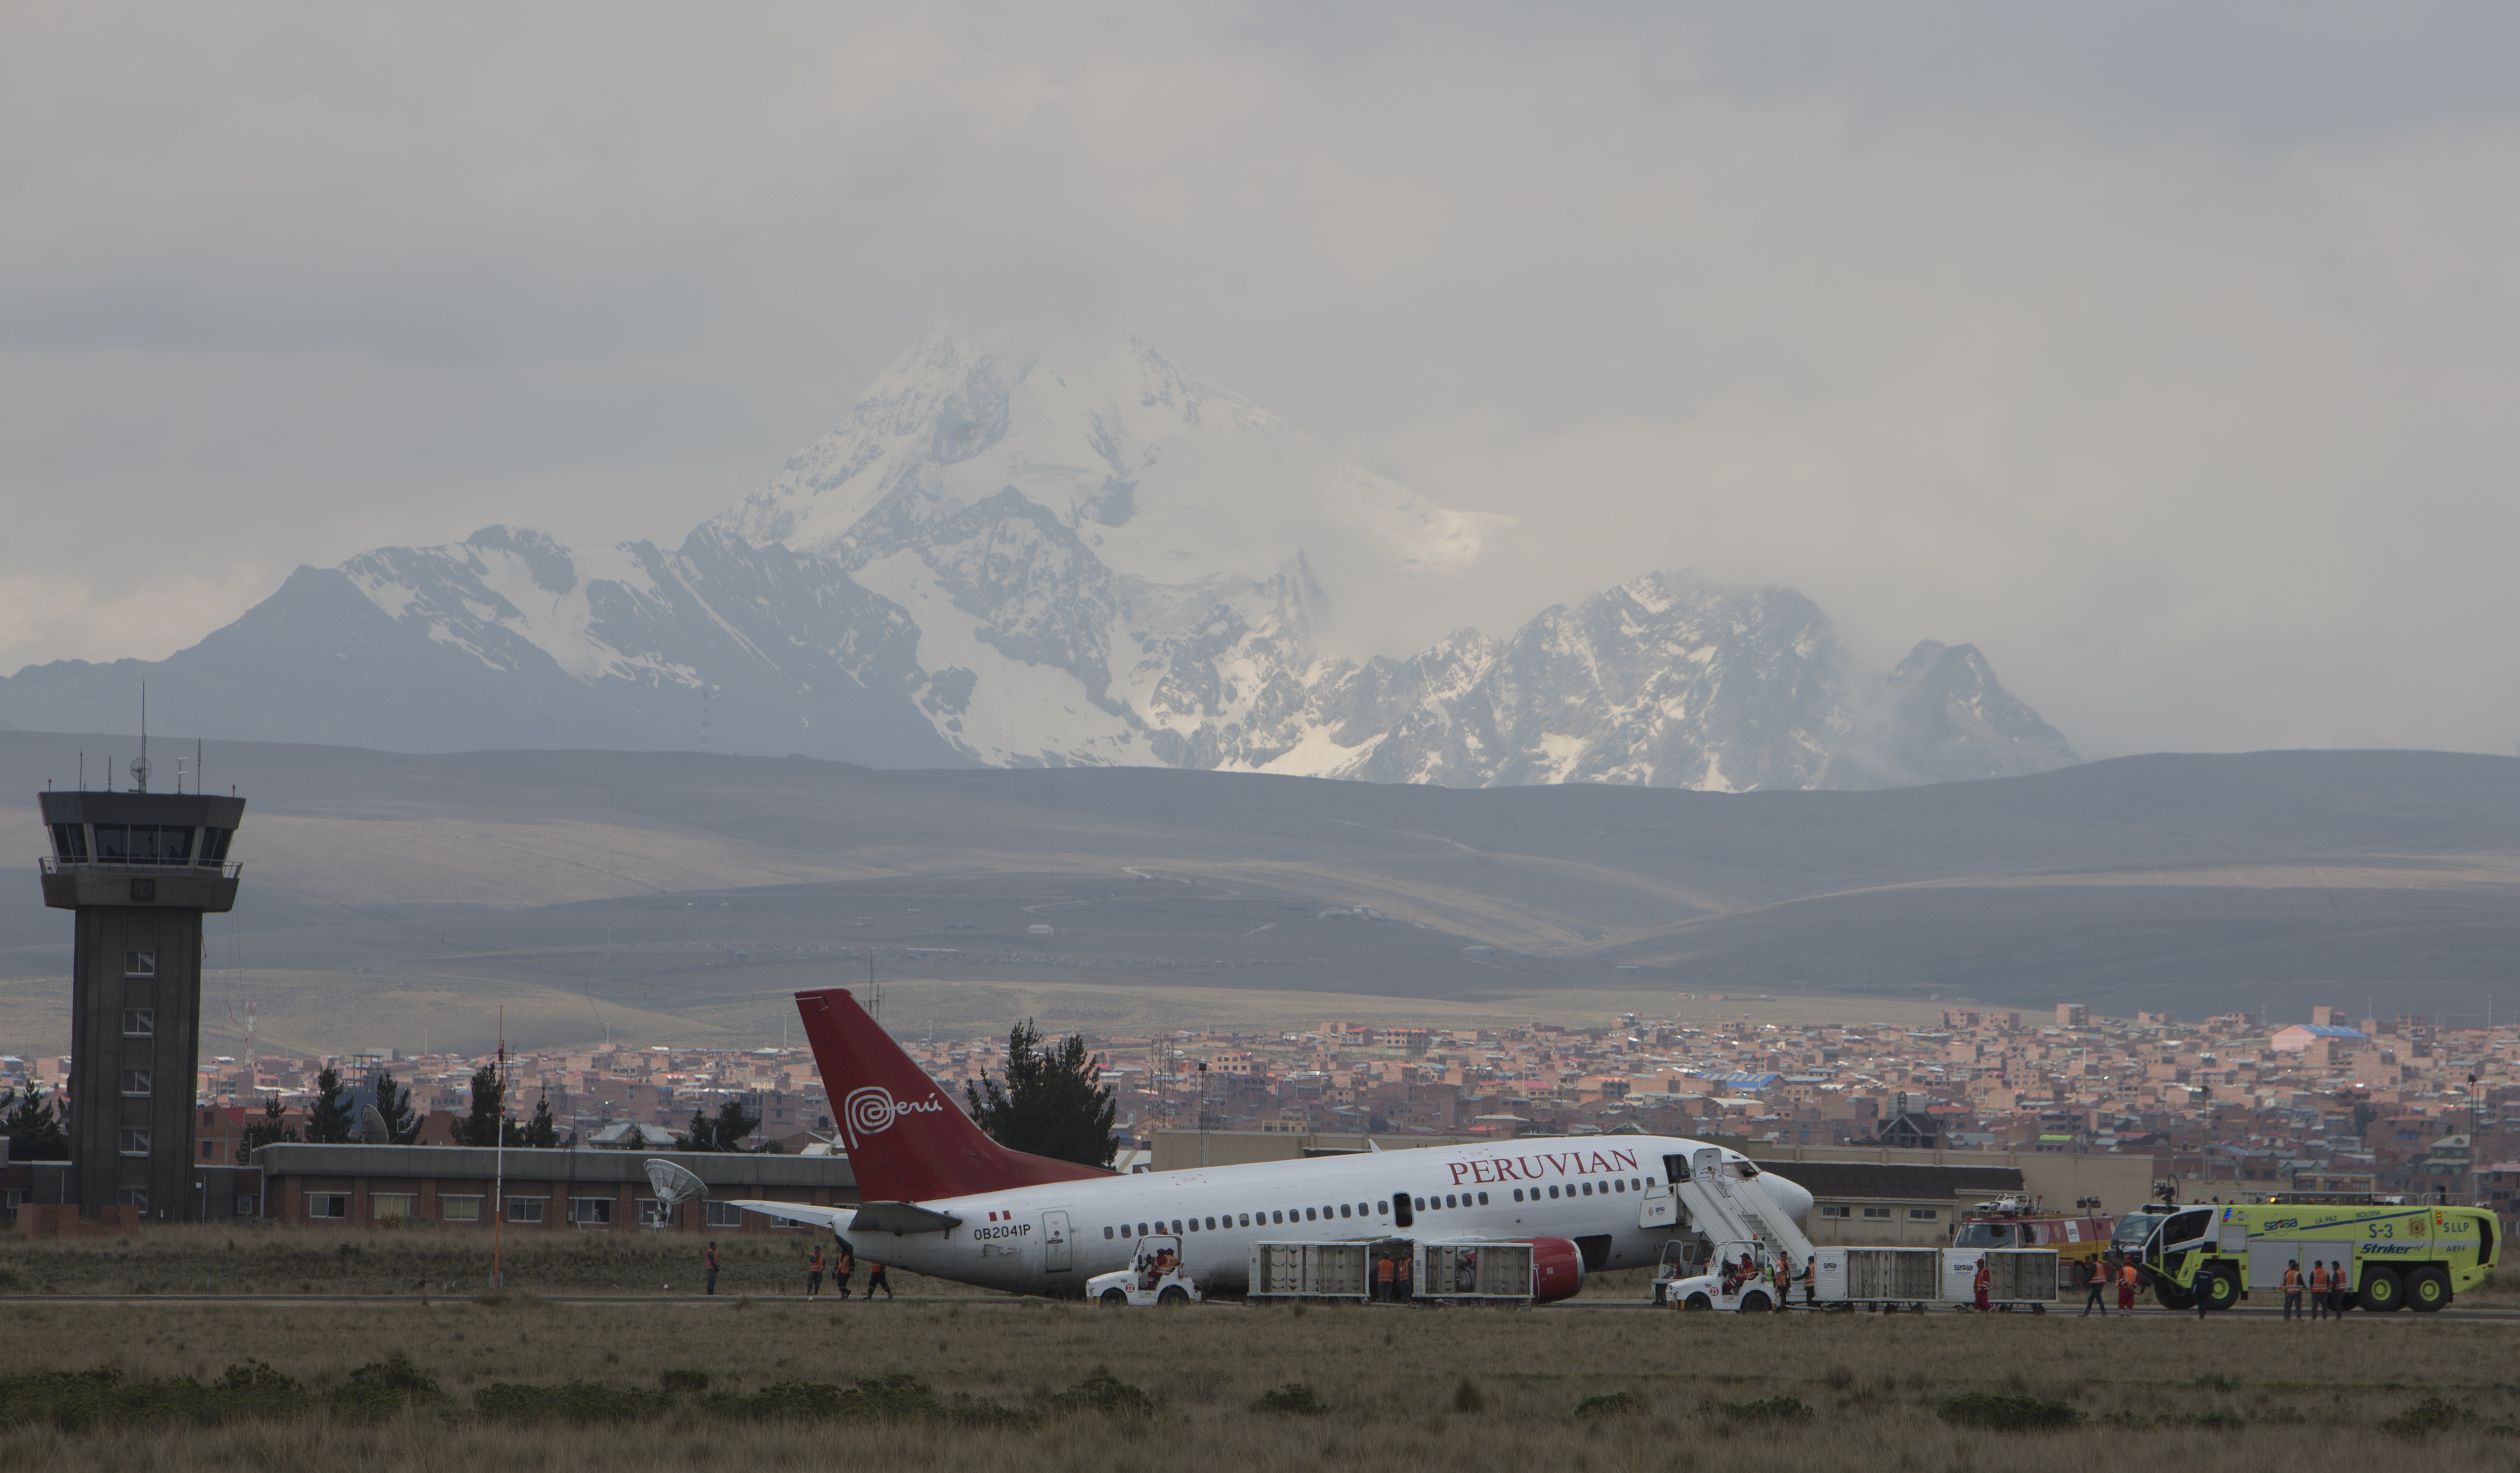 Landing gear collapse as plane lands in Bolivia; none hurt